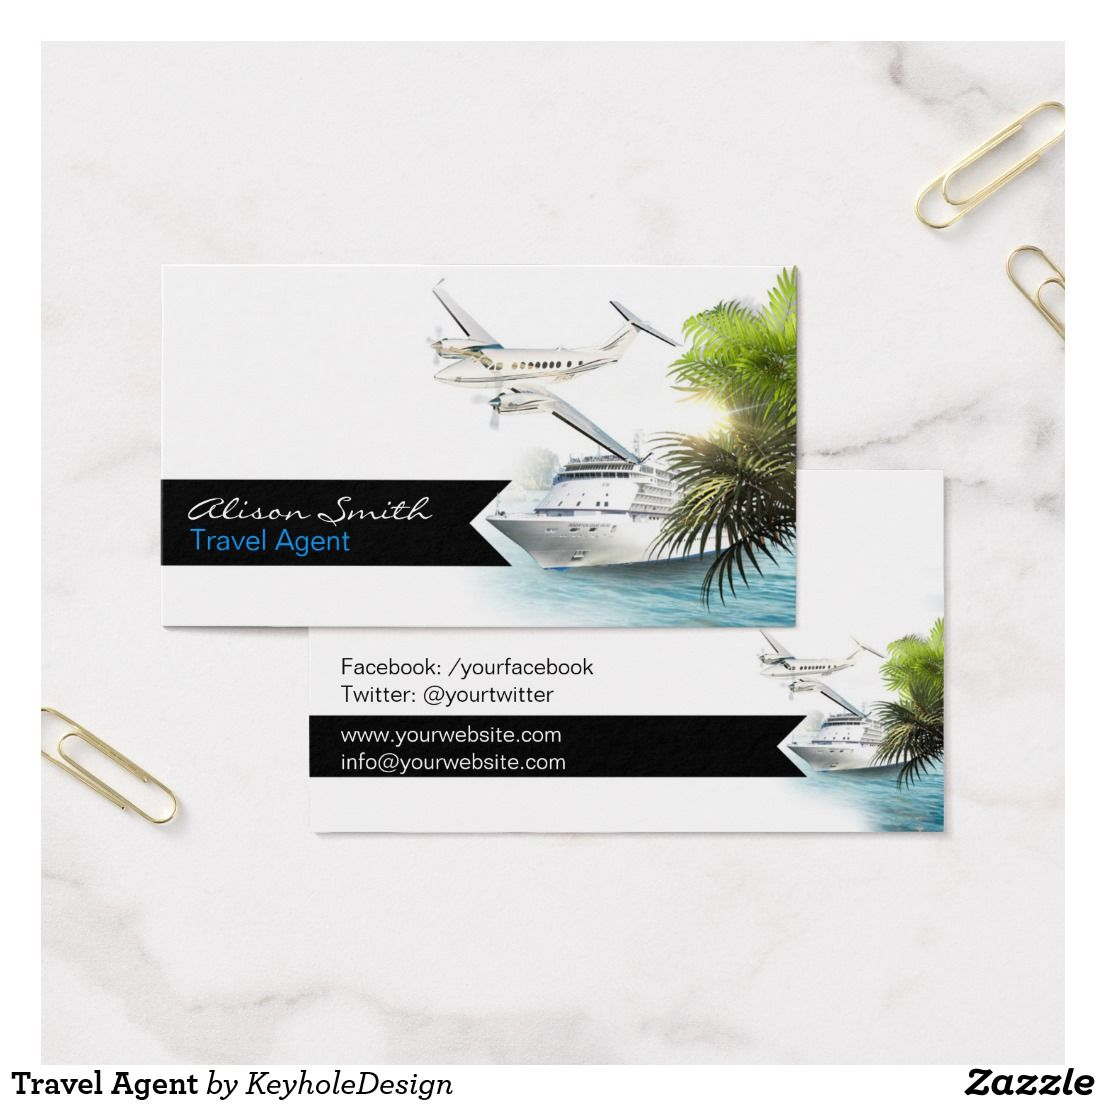 Travel Agent Business Card | Pinterest | Business cards and Business